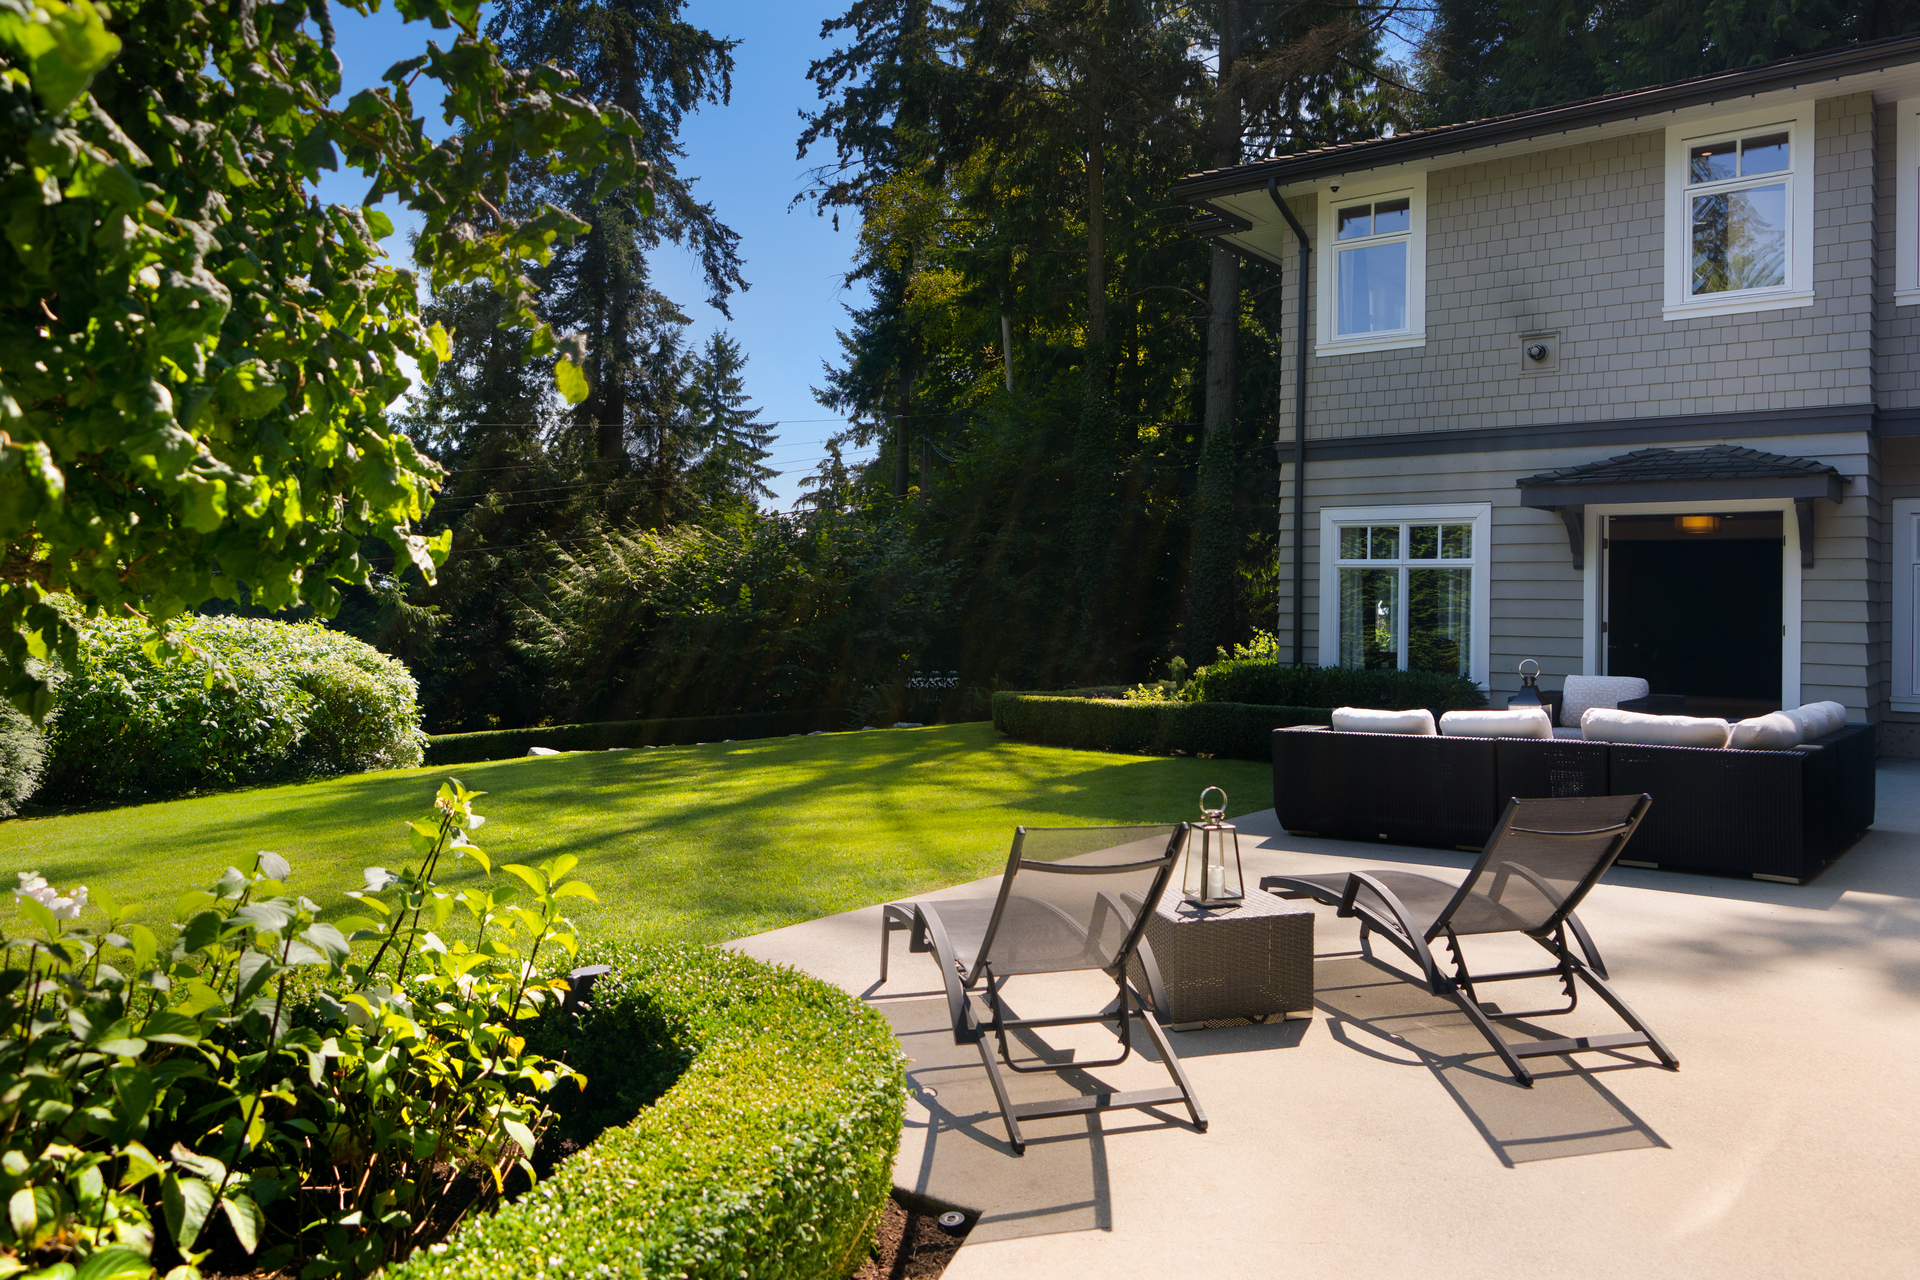 3082-spencer-place-58 at 3082 Spencer Place, Altamont, West Vancouver